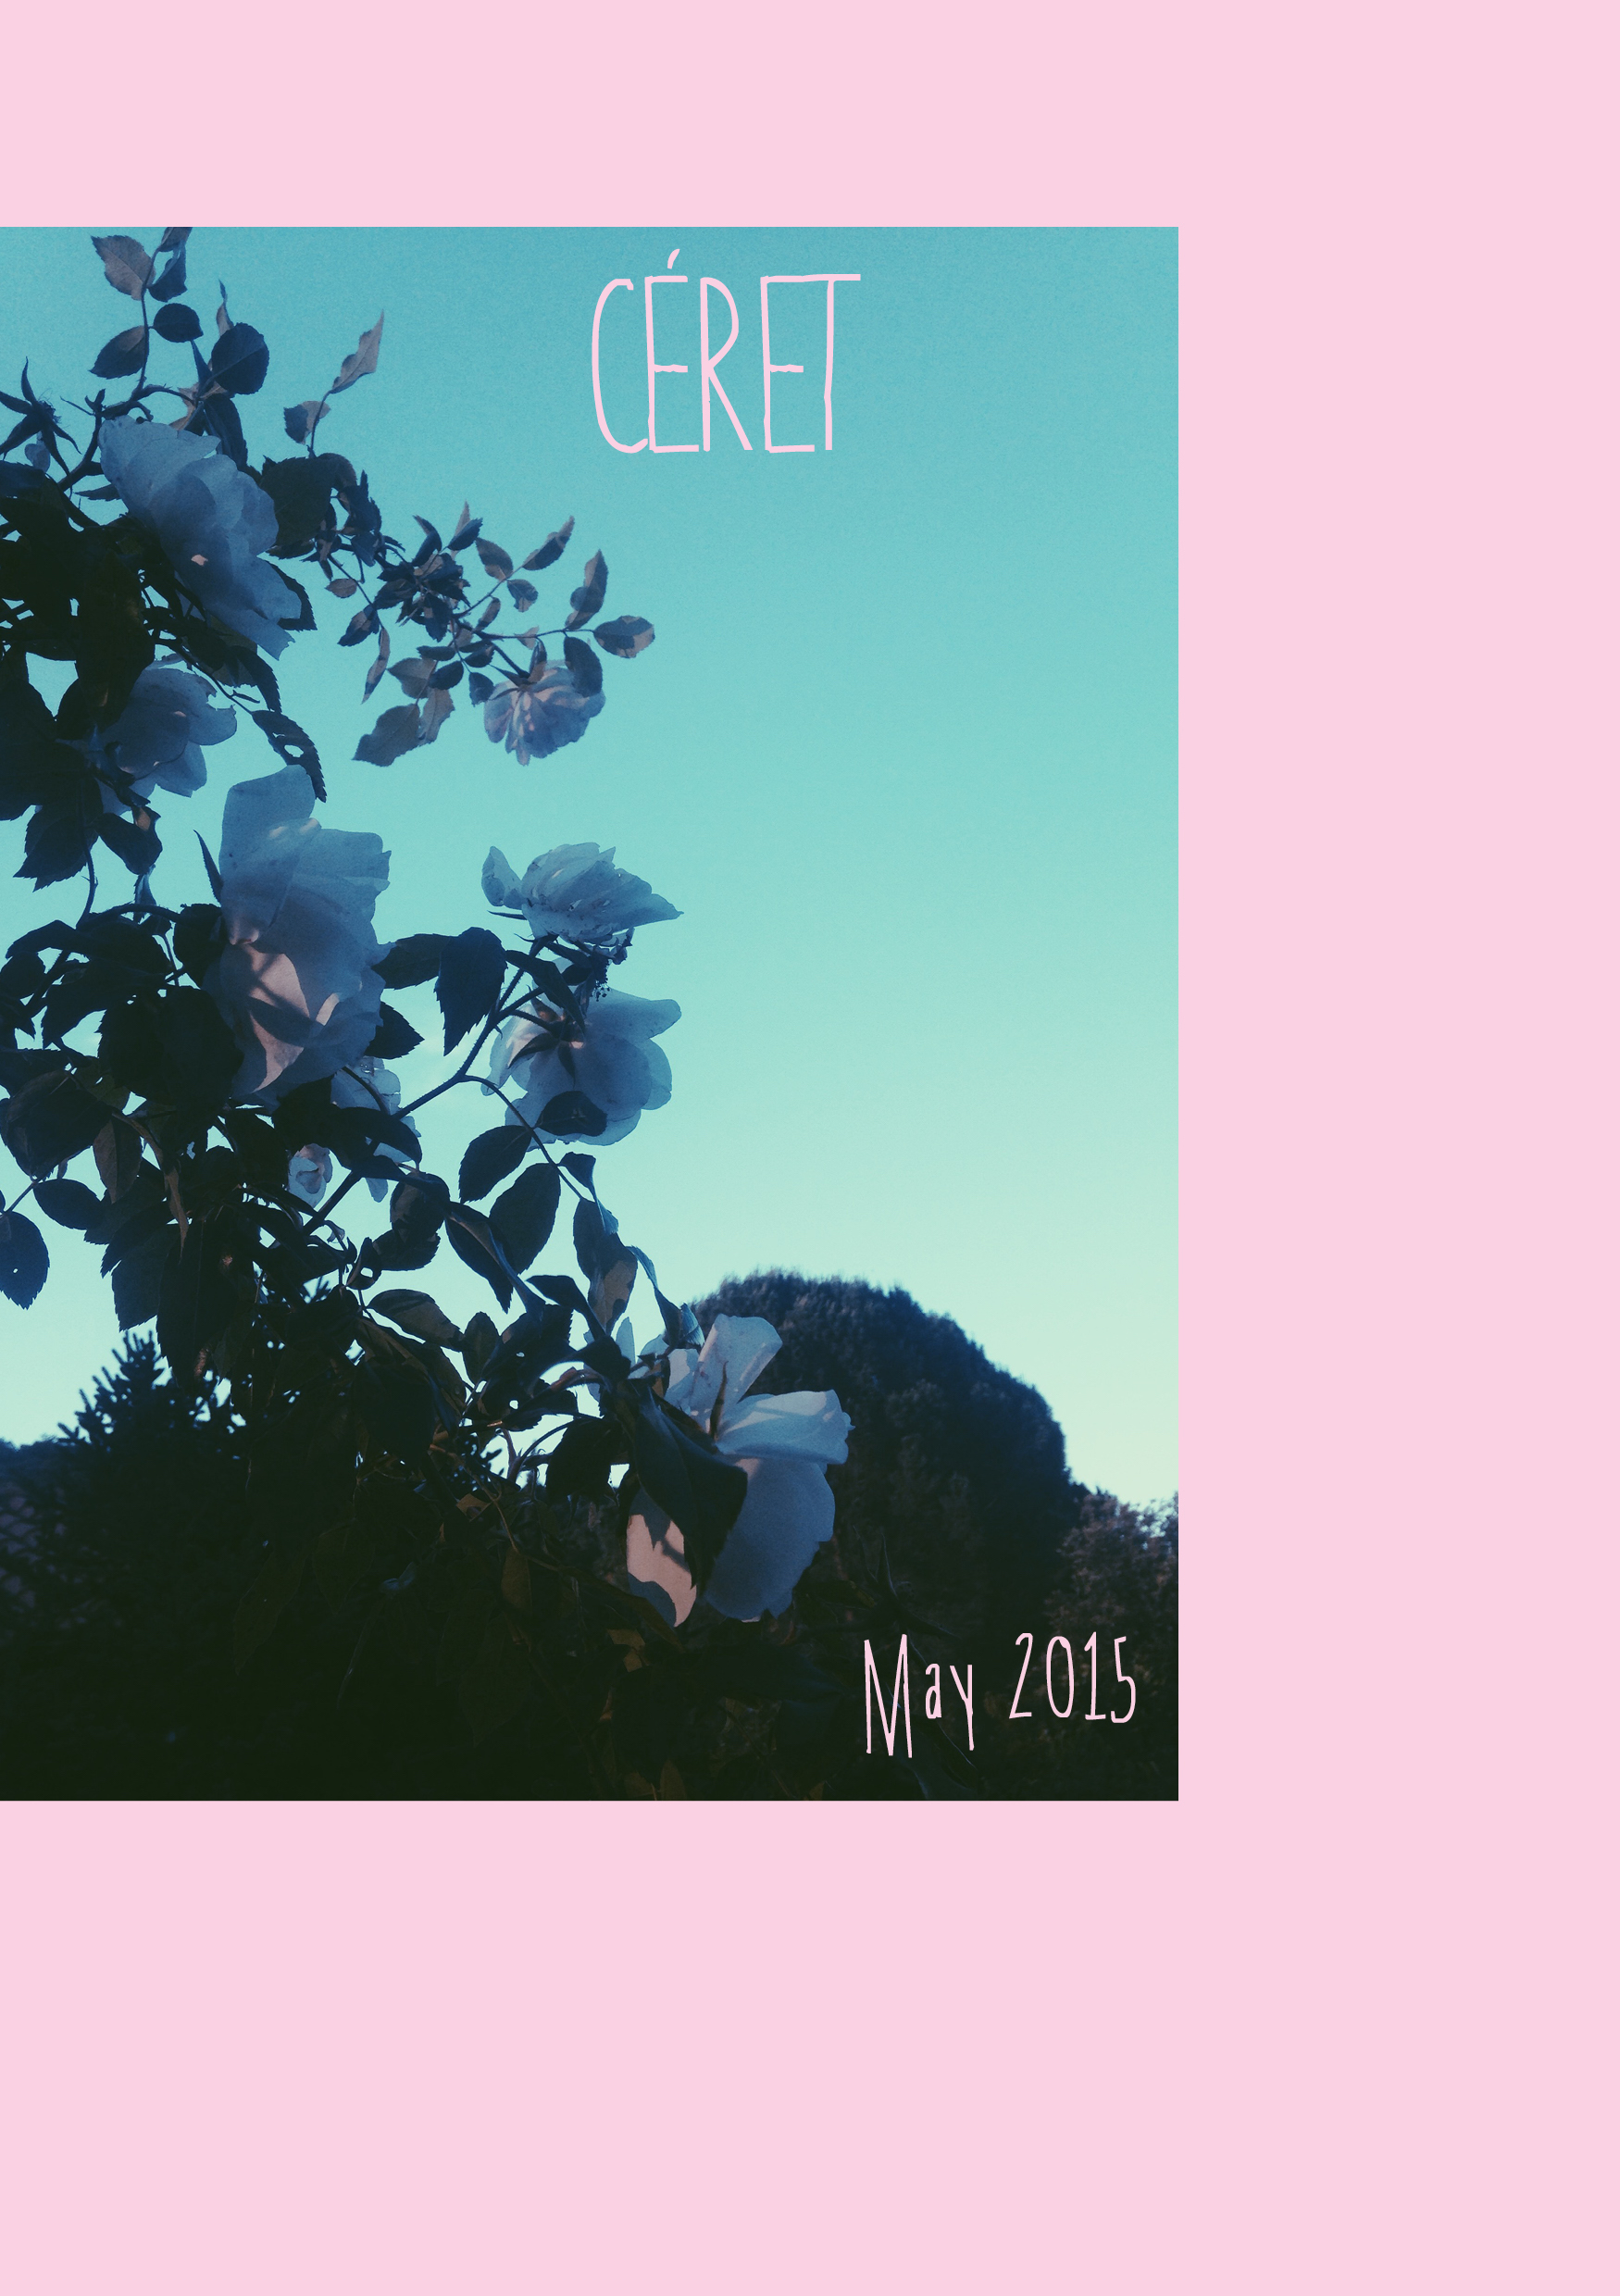 Ceret May 15 1